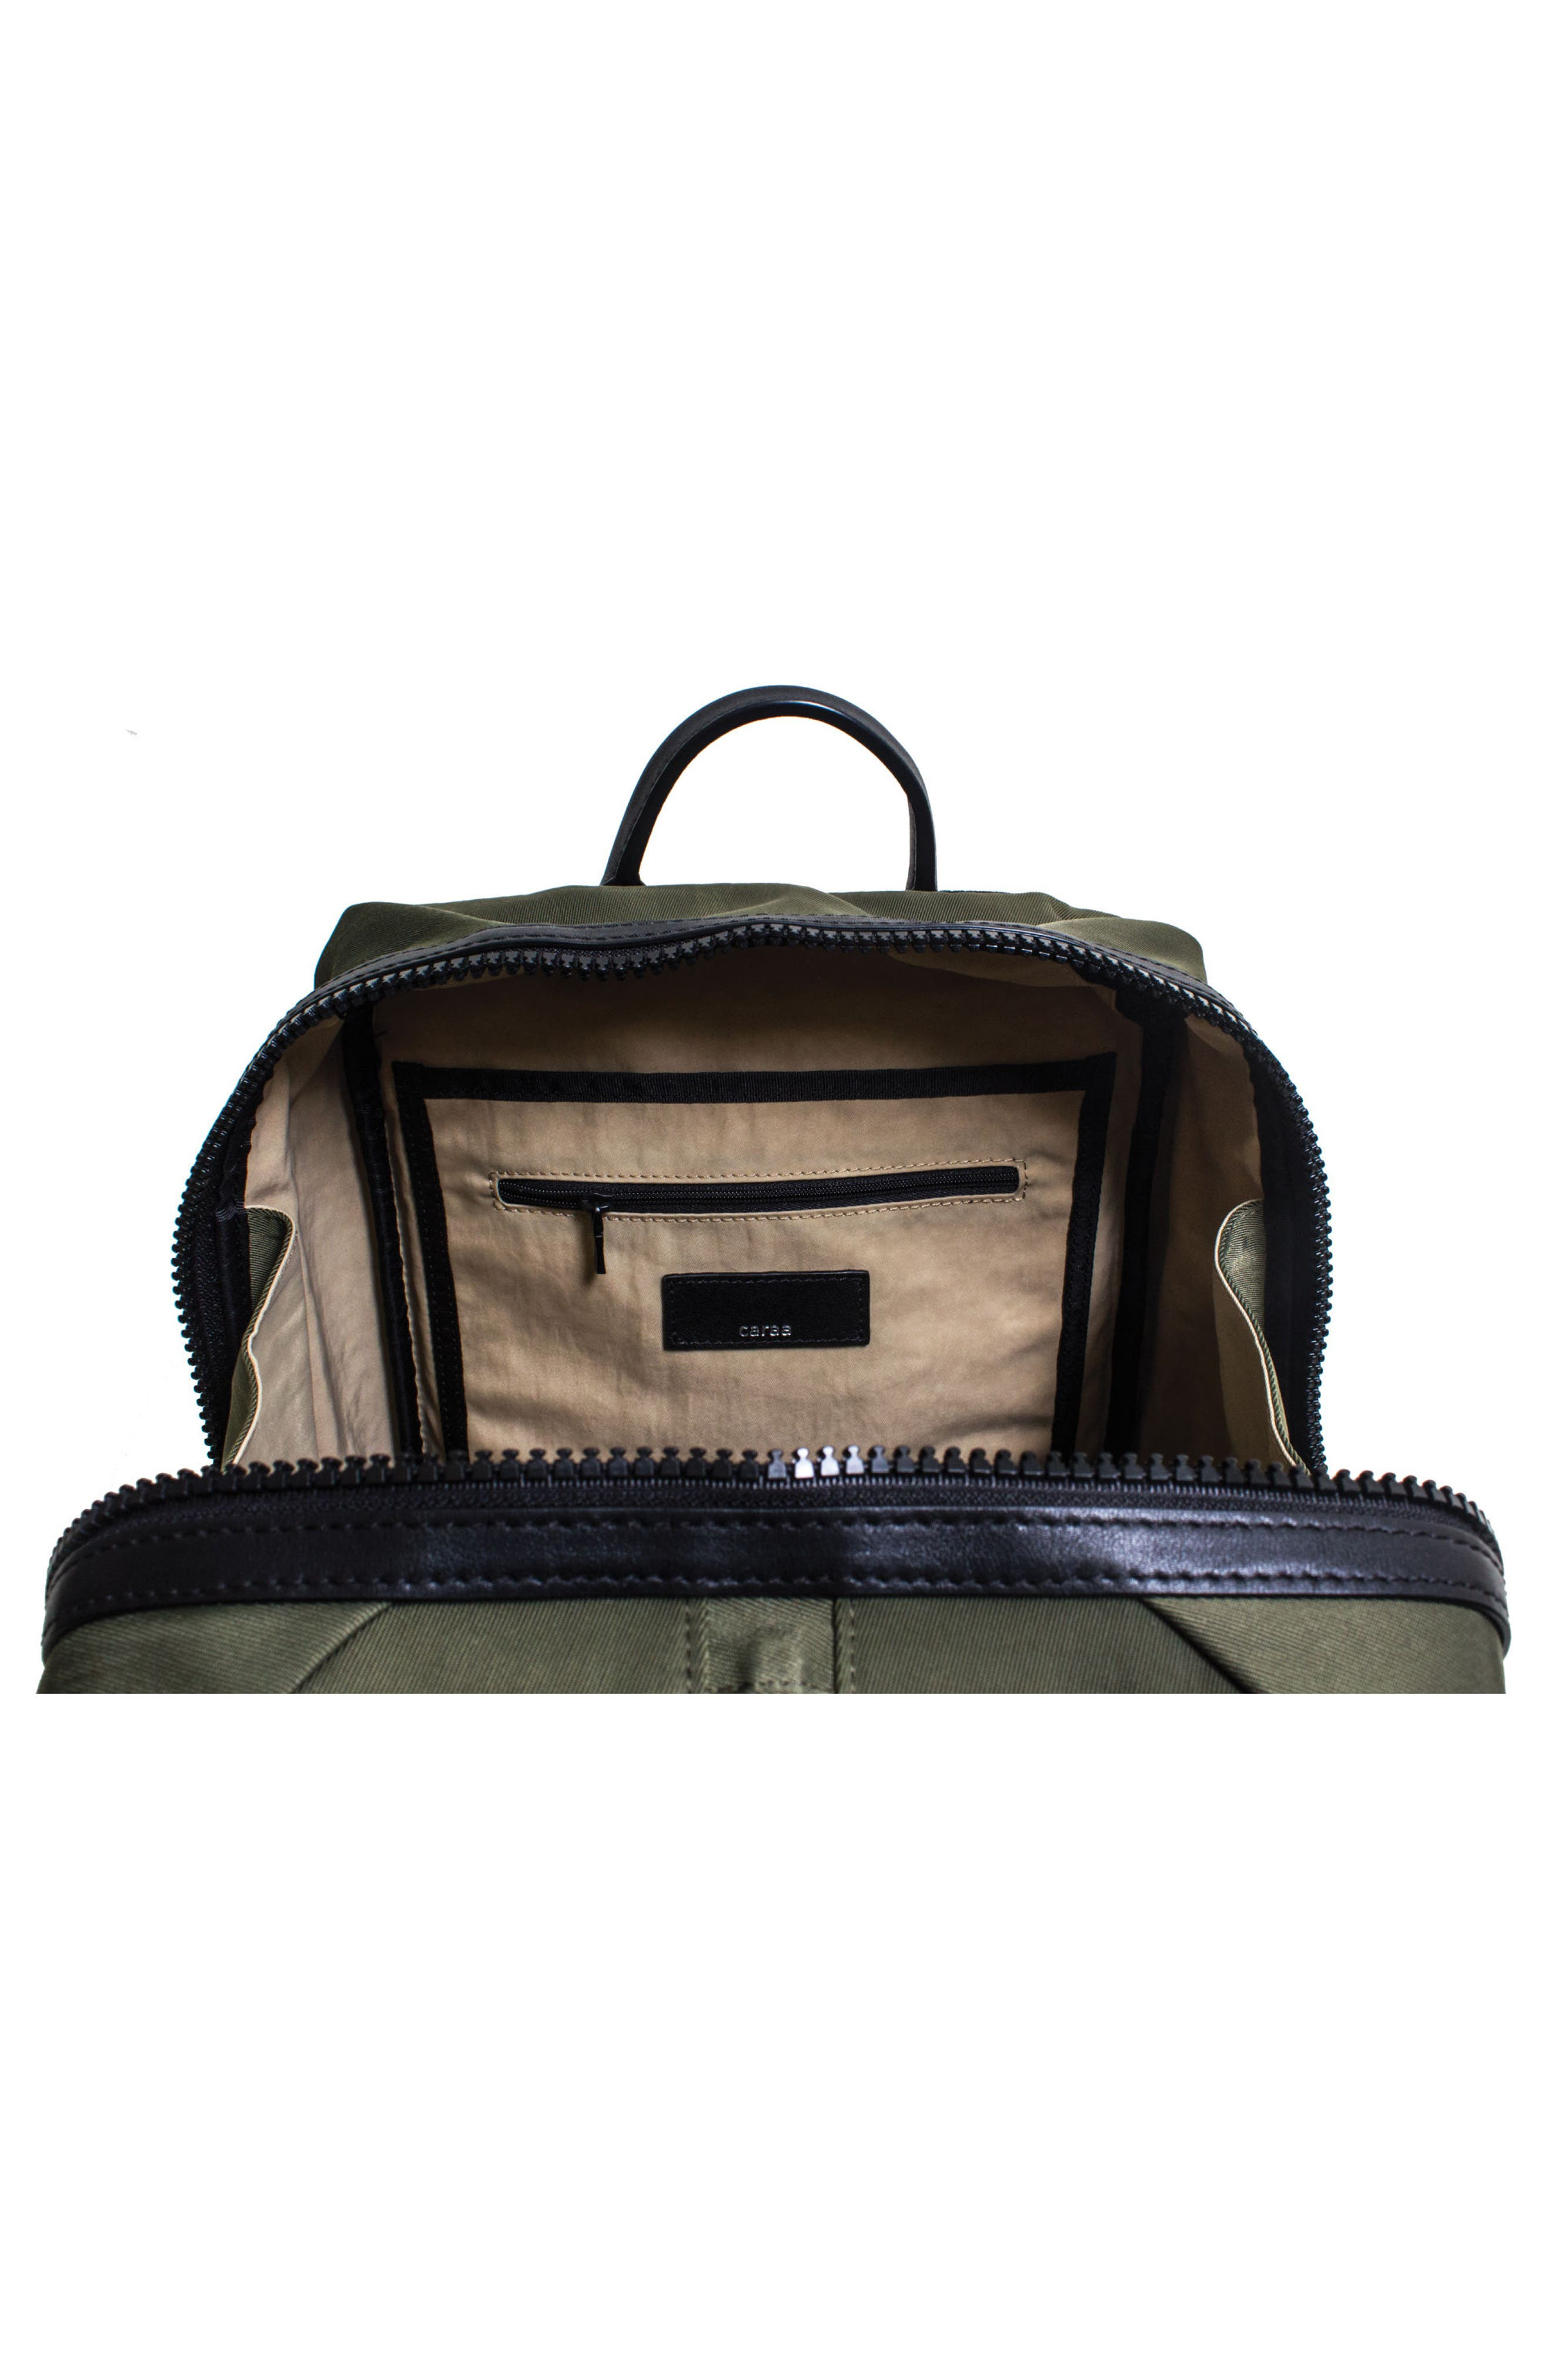 Studio 1.1 Convertible Duffel Bag,                             Alternate thumbnail 4, color,                             300